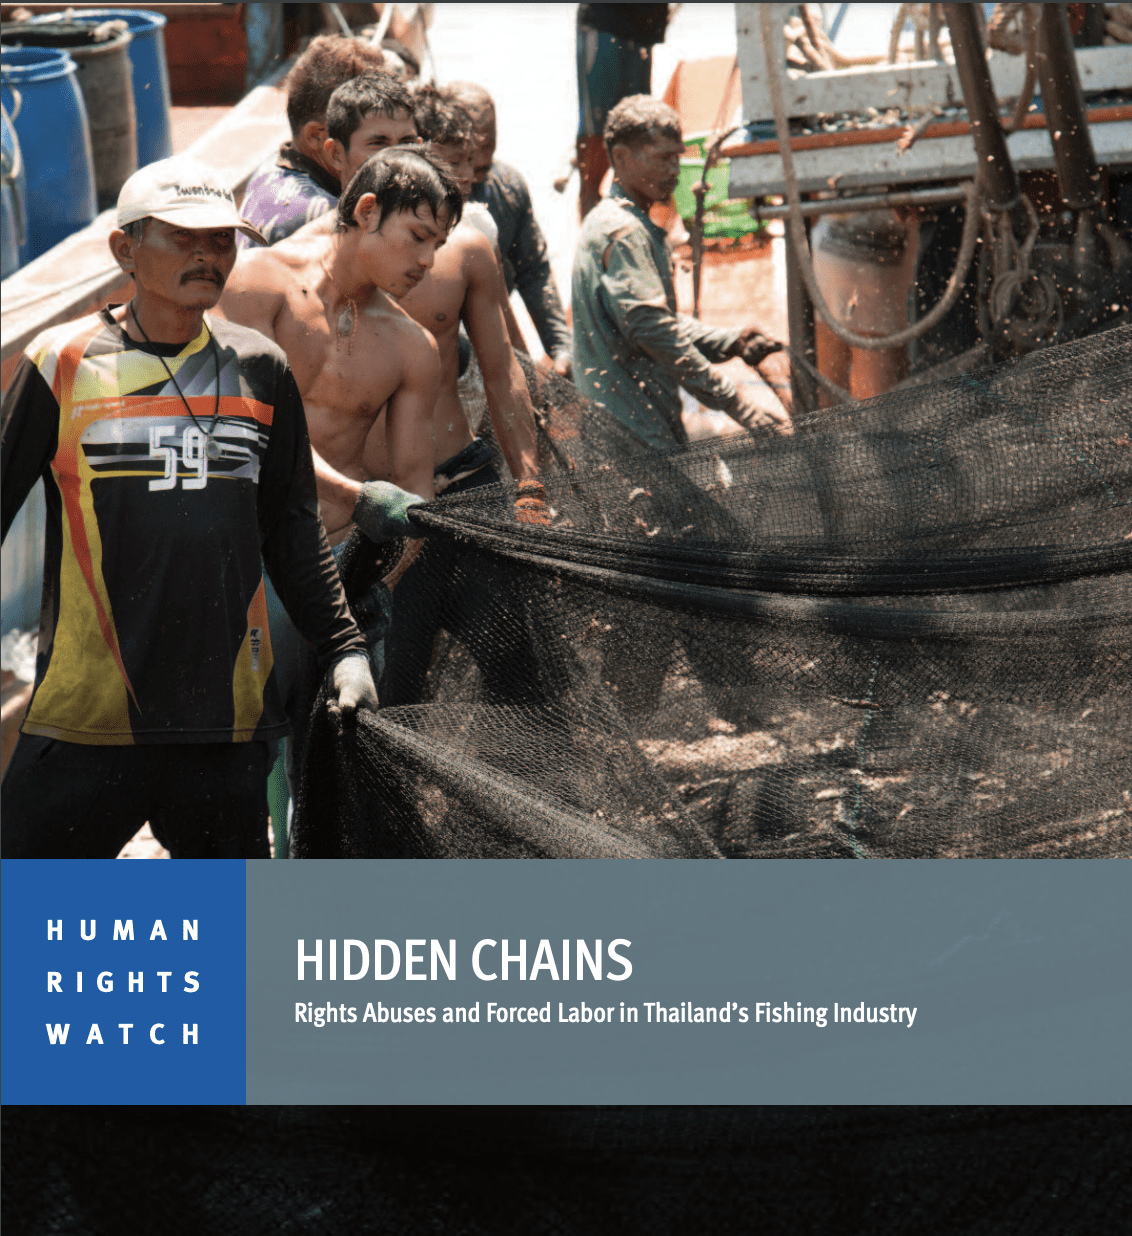 Hidden Chains: Rights Abuses and Forced Labor in Thailand's Fishing Industry